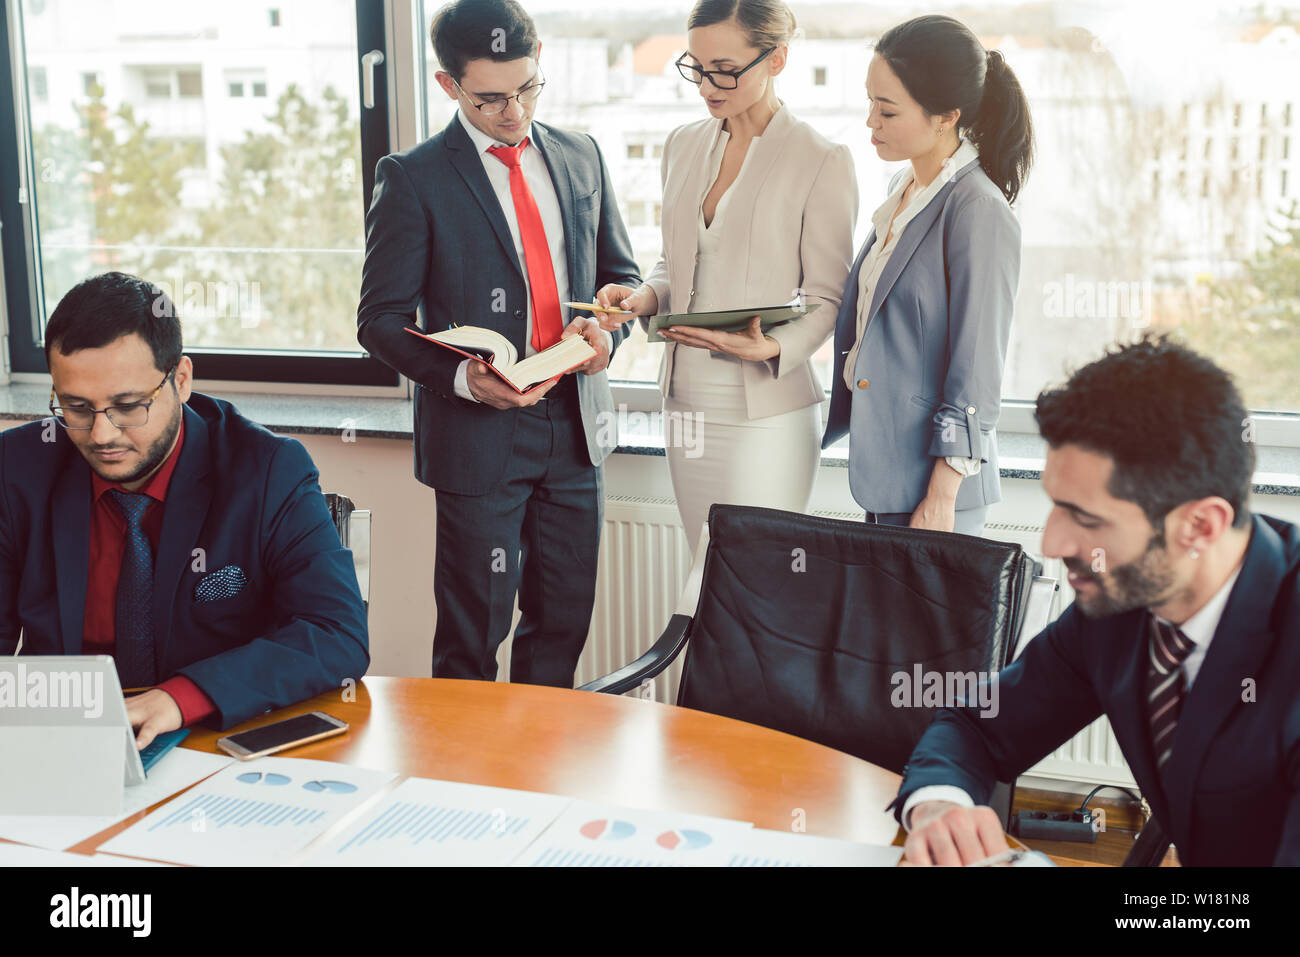 Very international consultants working on a project together - Stock Image